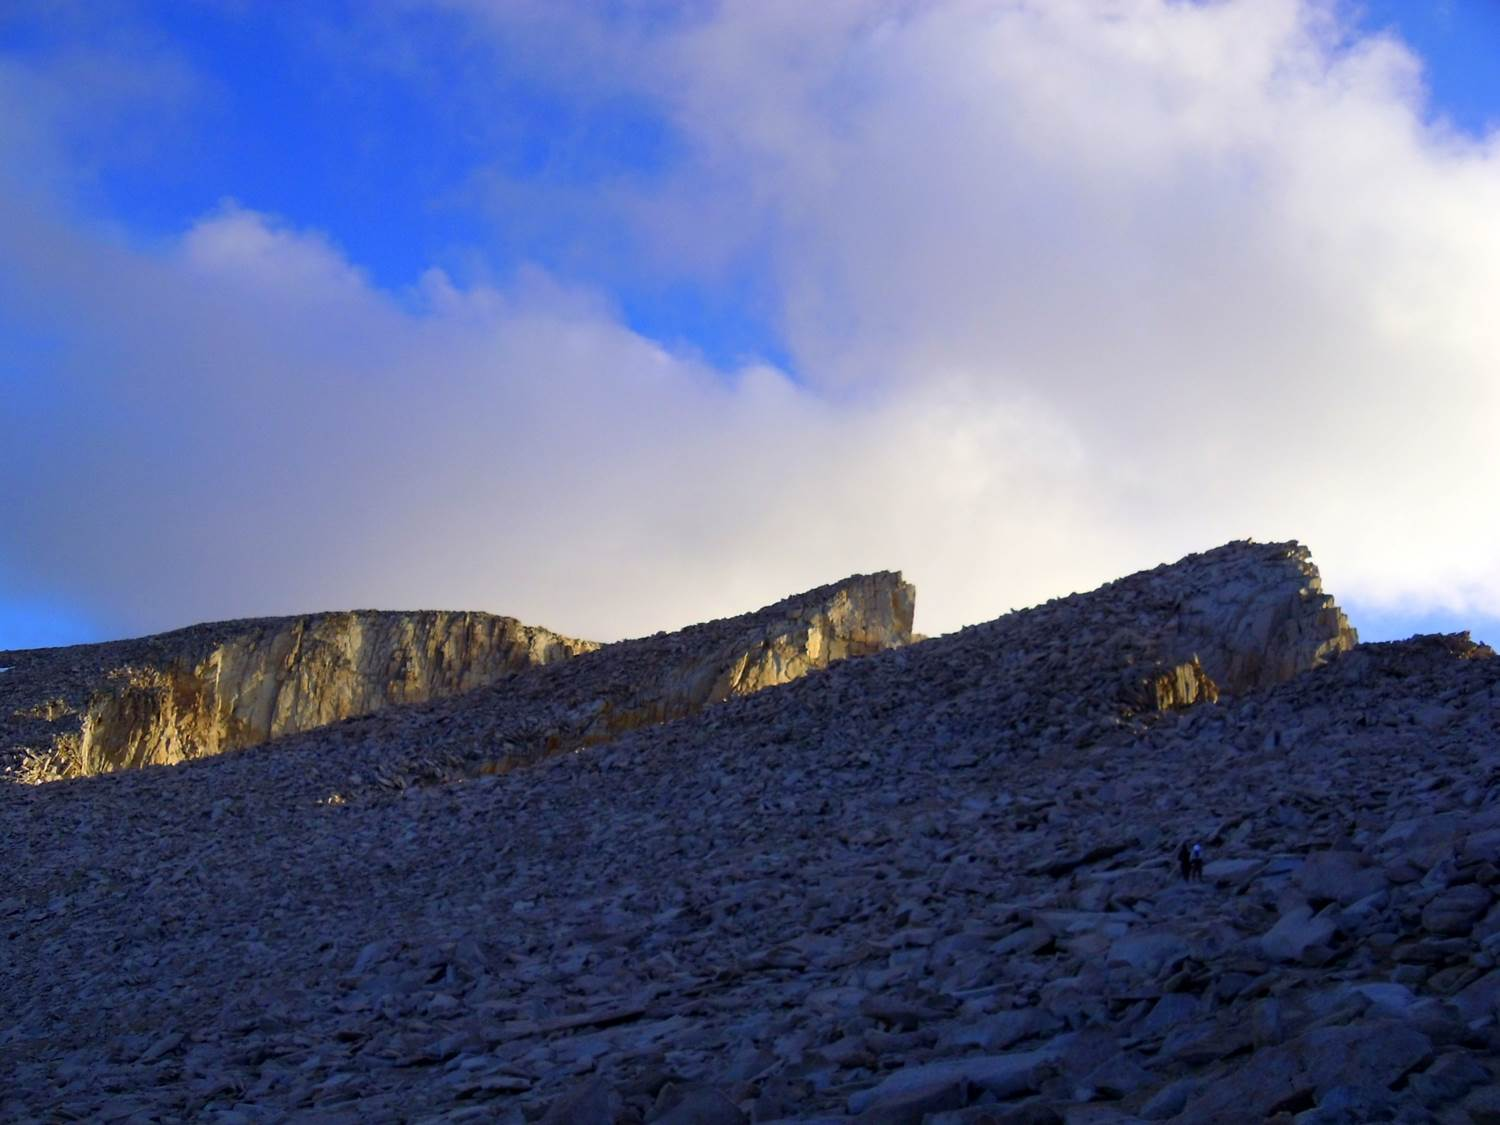 mt whitney summit in sight - trans-sierra xtreme challenge day 6